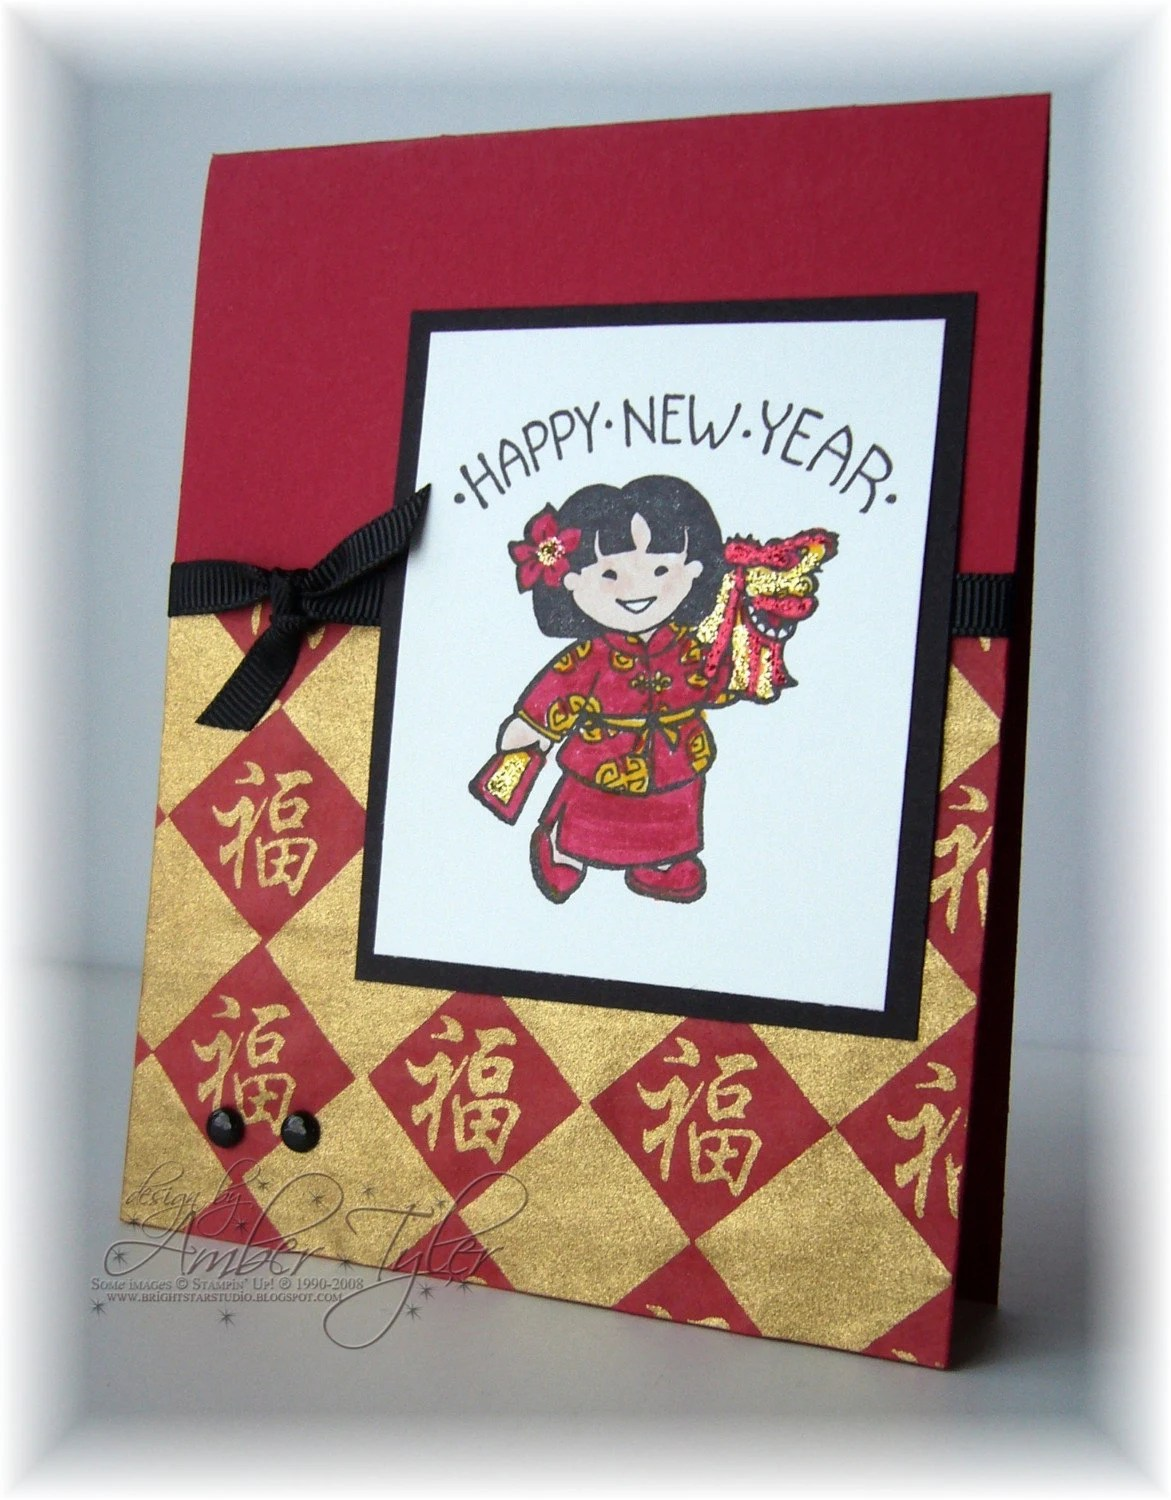 Chinese New Year Card found on Etsy - BrightStarStudio